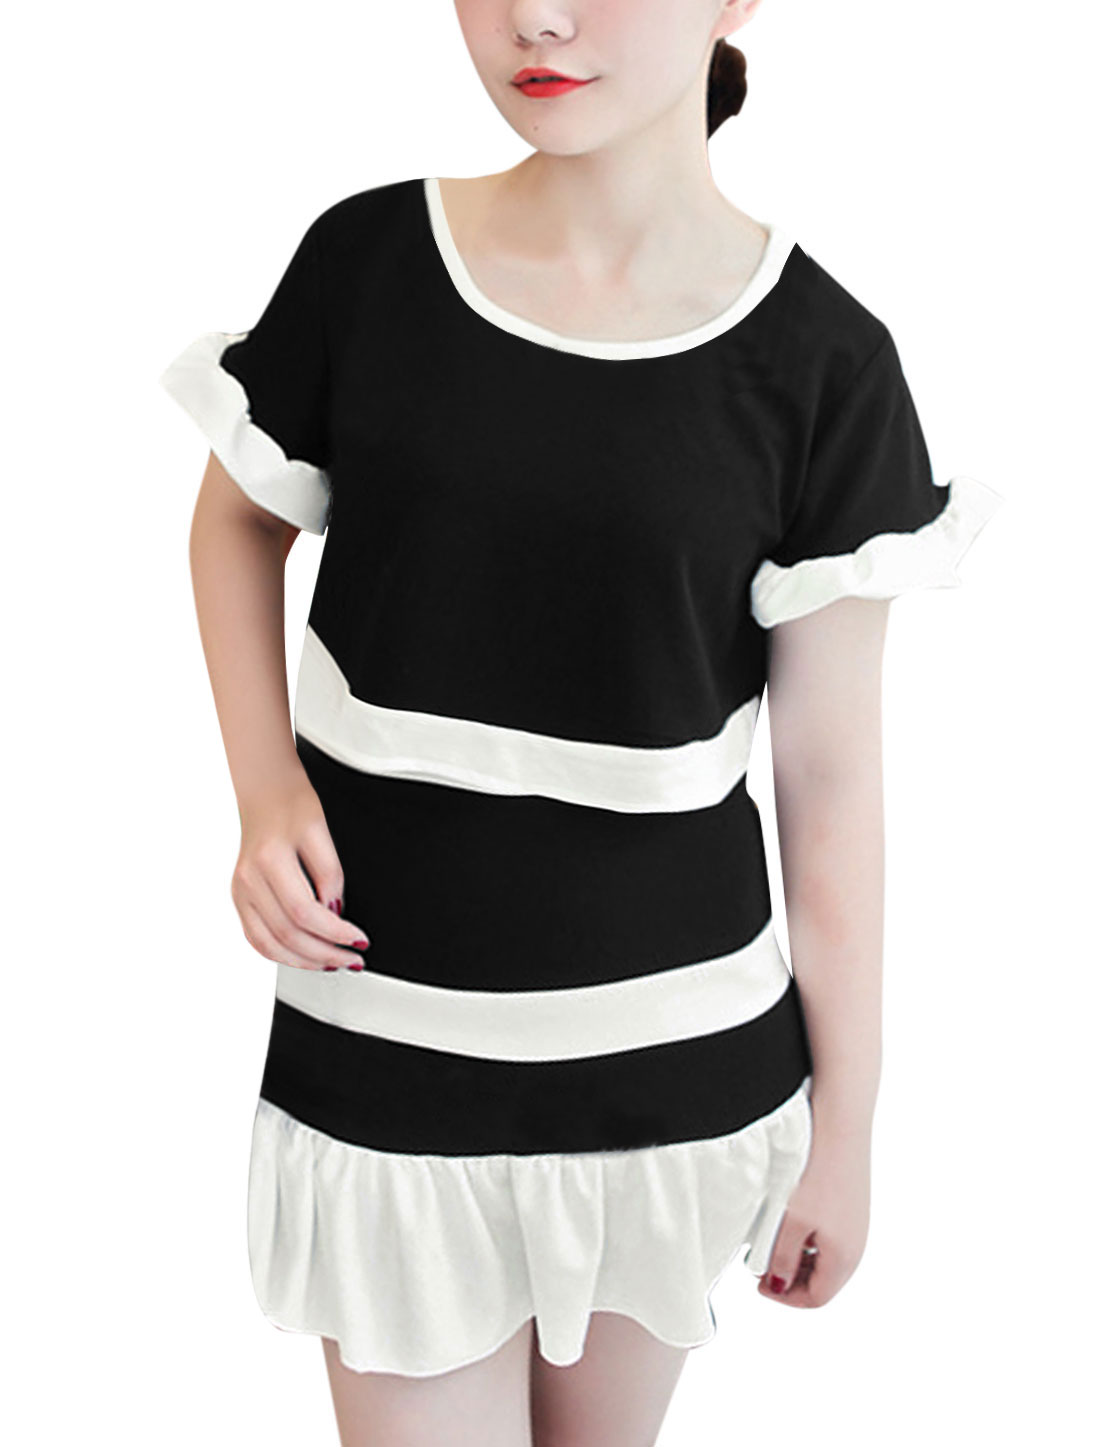 Lady Round Neck Color Block Top w Flouncing Design Skirt Black XS